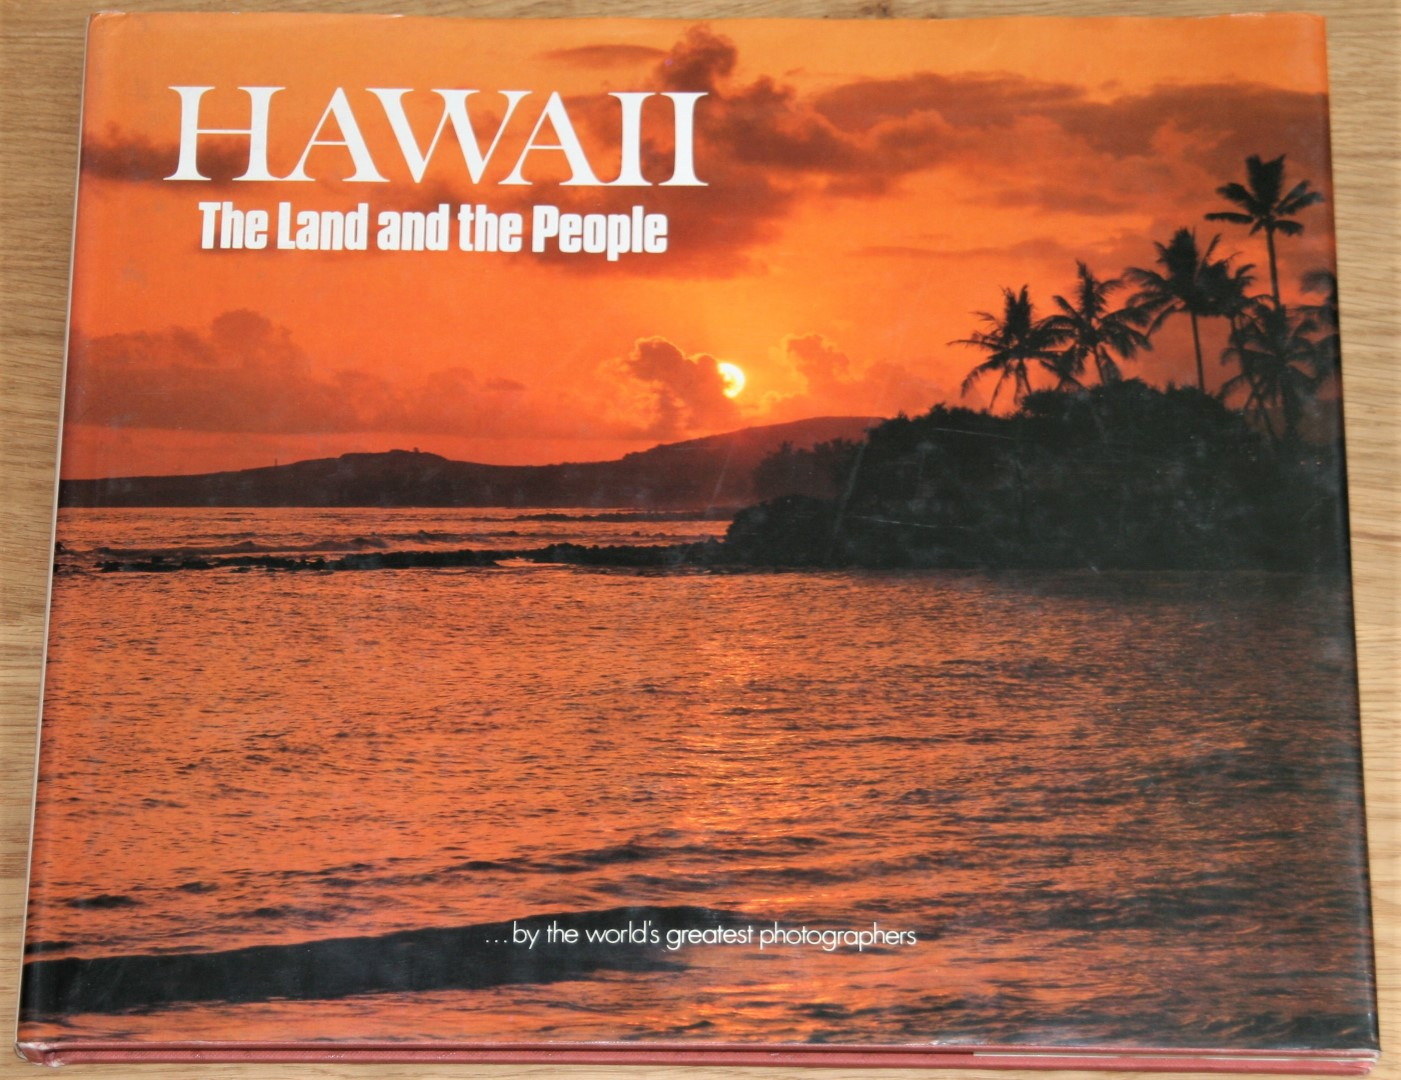 Hawaii. The Land and the People by the worlds greatest photographers.